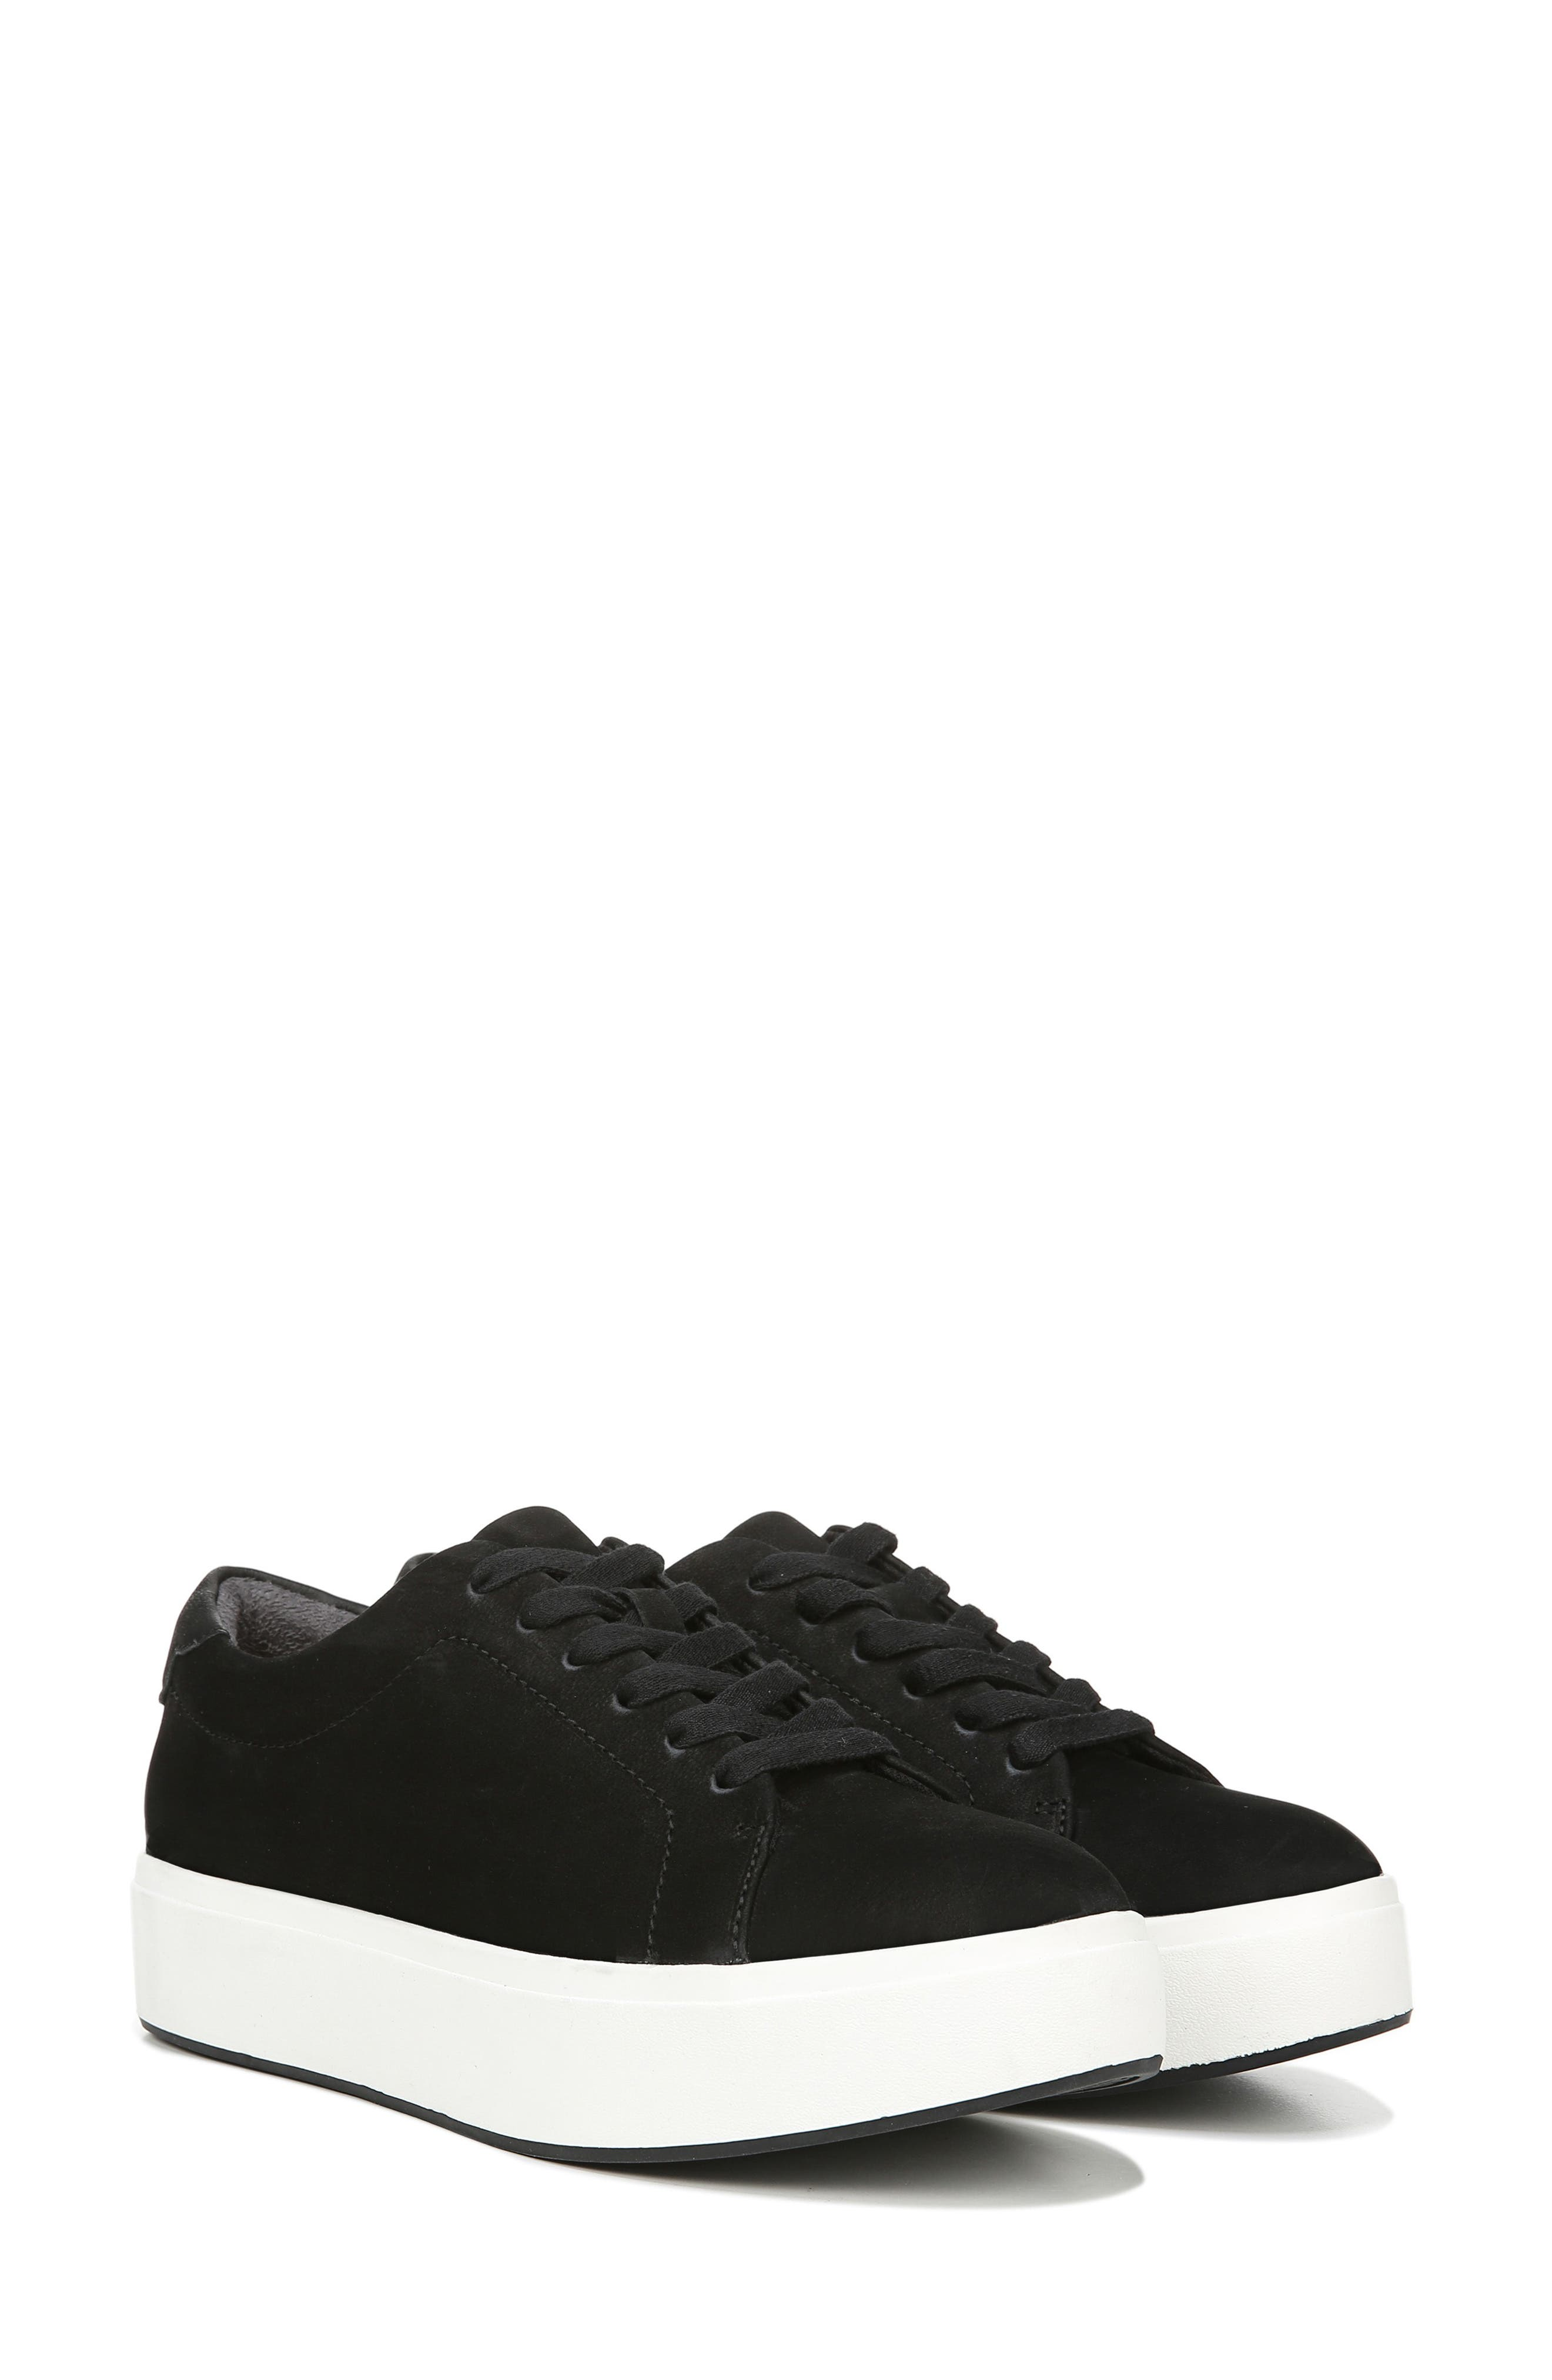 DR. SCHOLL'S, Abbot Luxe Platform Sneaker, Alternate thumbnail 9, color, BLACK SUEDE